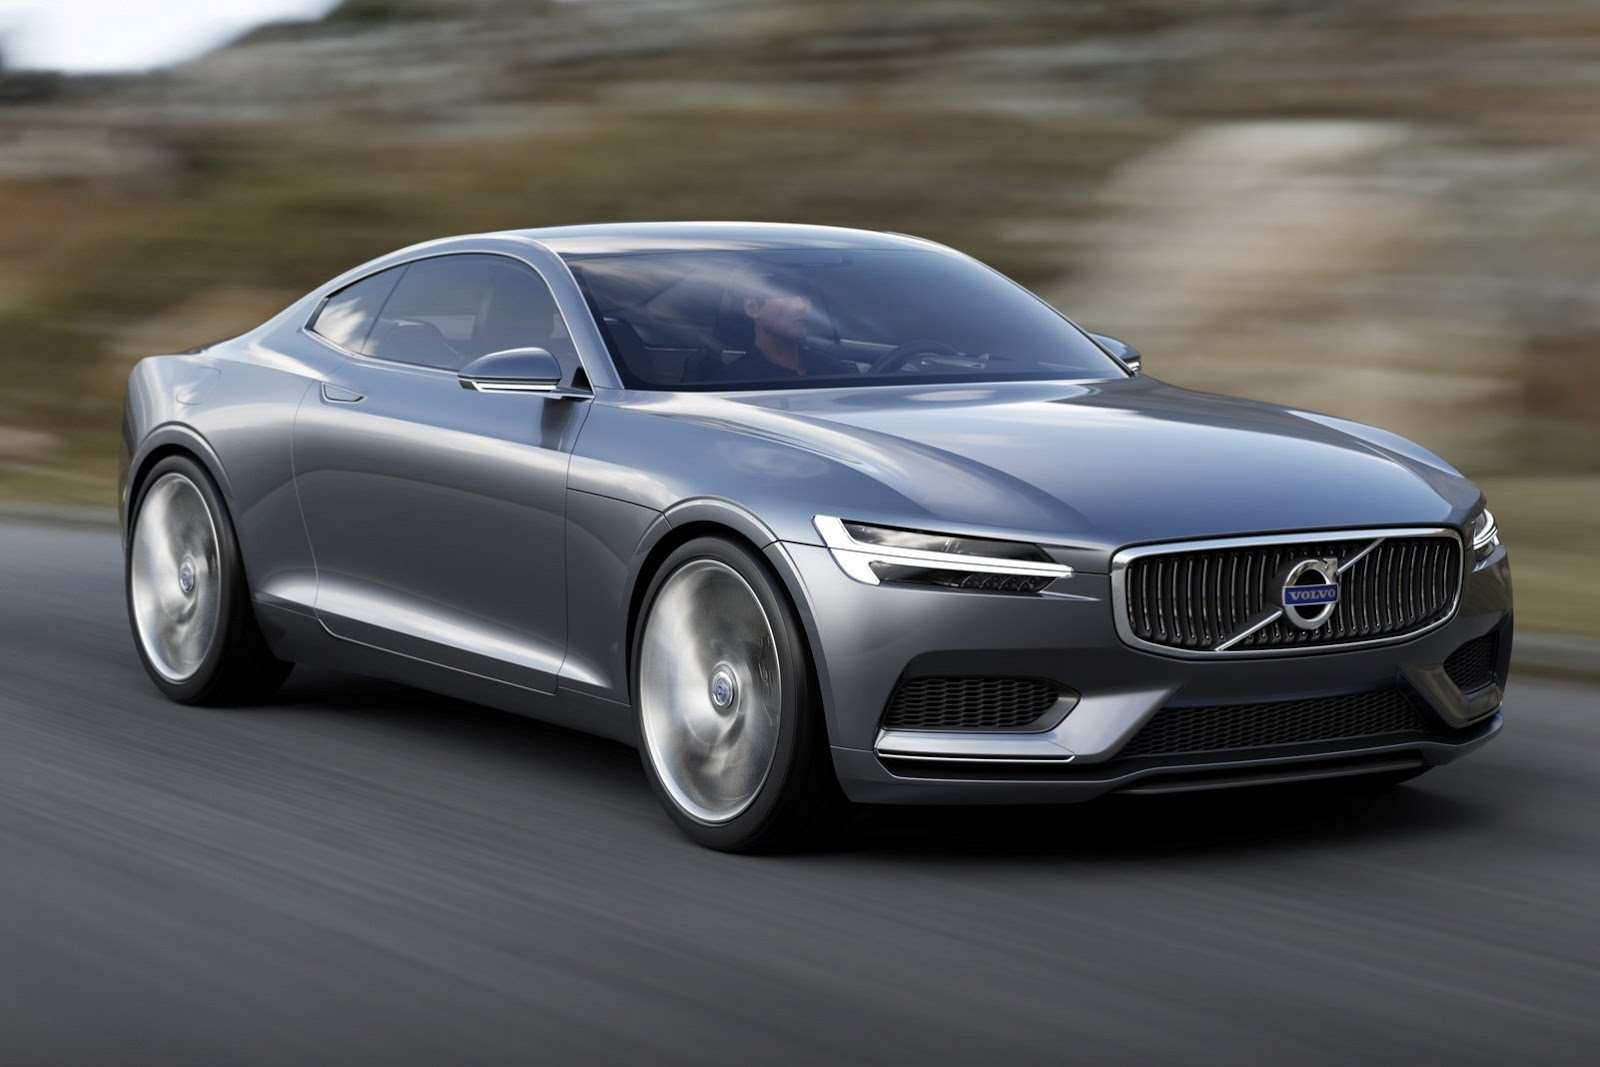 73 The Best Volvo Coupe 2019 Price And Review